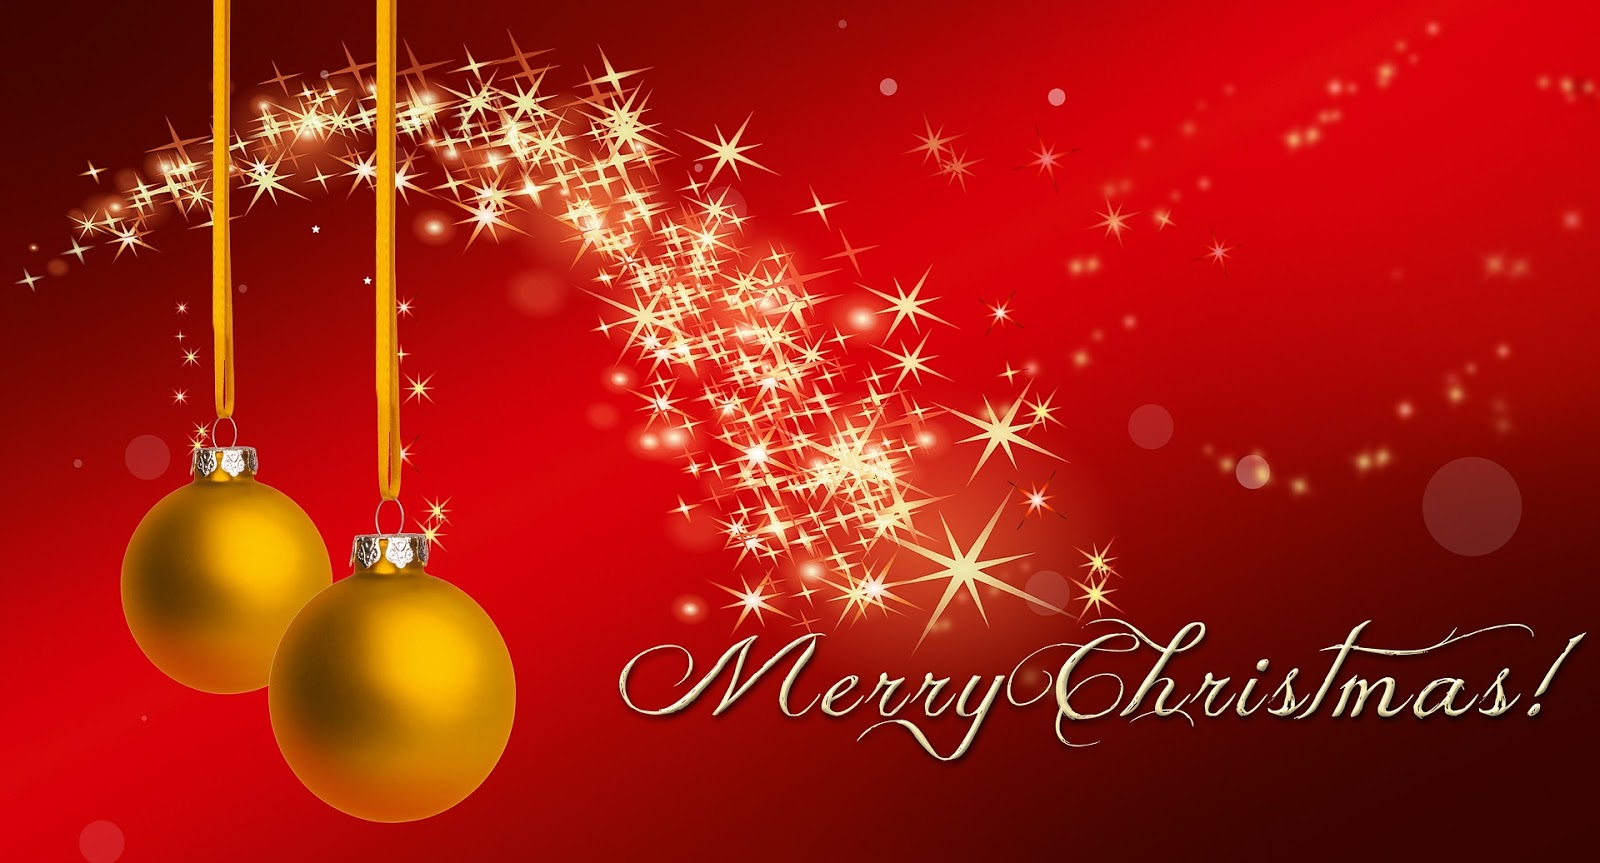 Merry Christmas 2017 Images Download